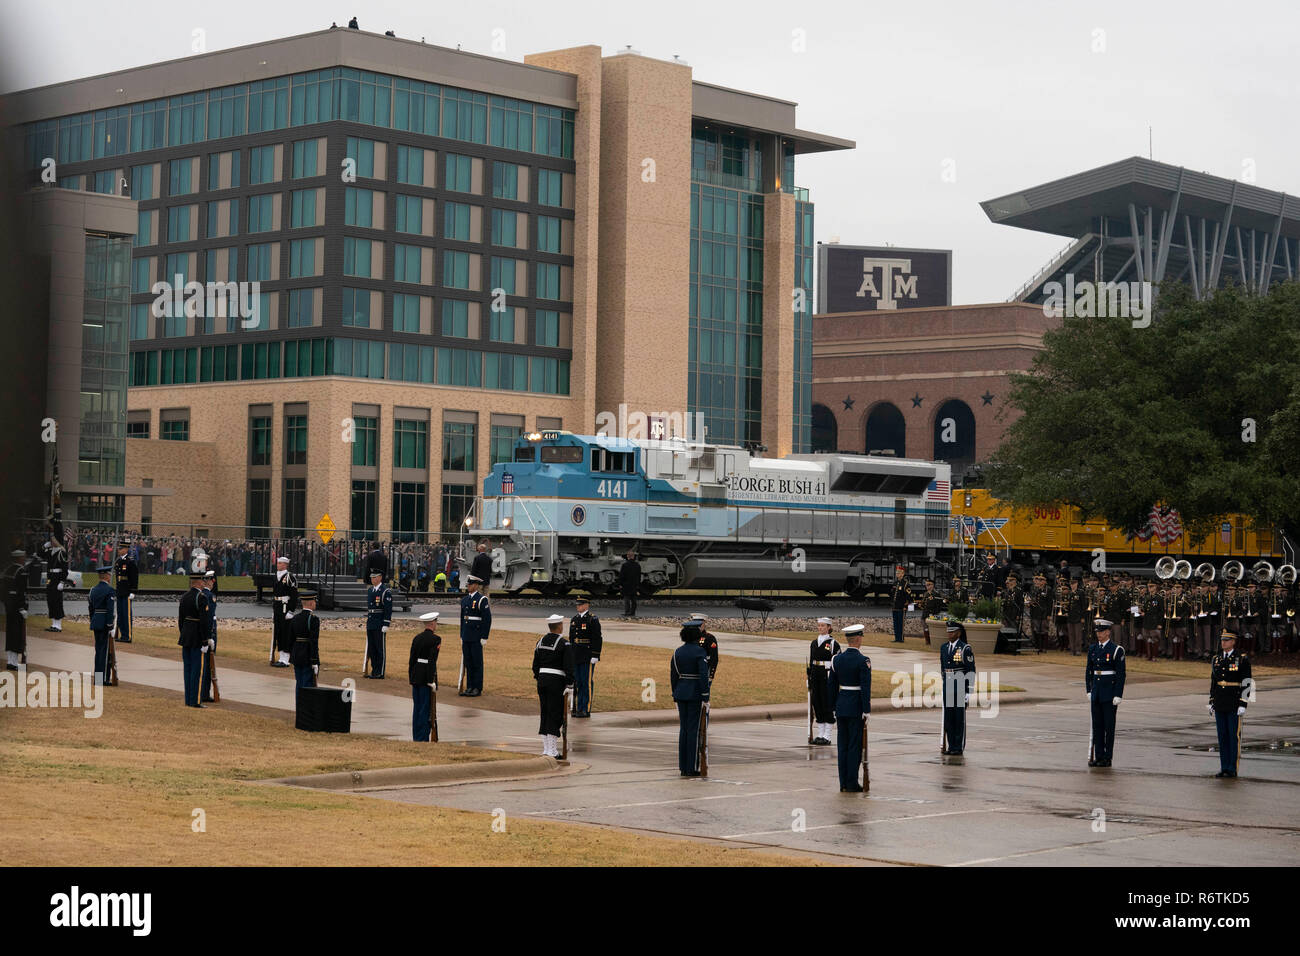 Train carrying the casket of former President George H.W. Bush from Houston arrives at Texas A&M University in College Station for burial at the nearby George Bush Library. Stock Photo